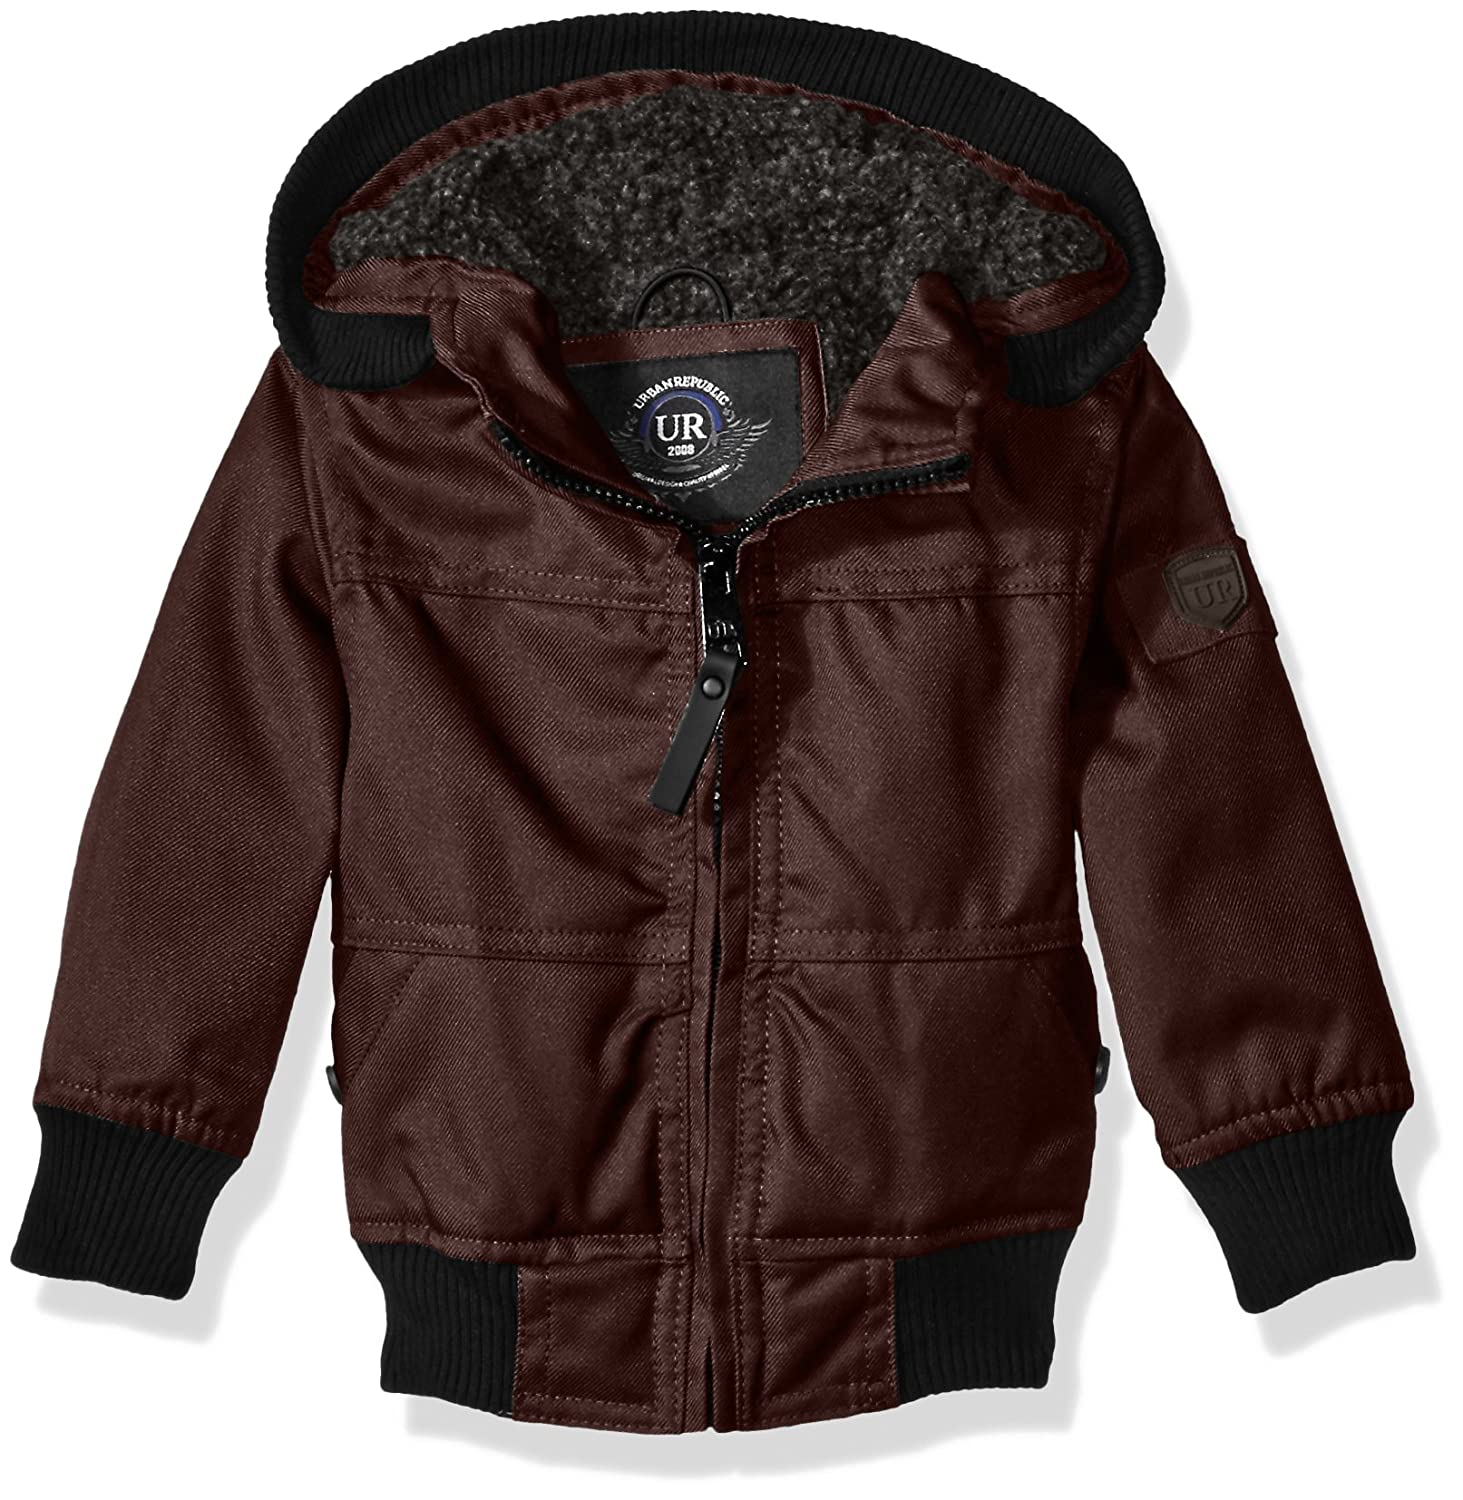 Urban Republic Baby Boys' Infant Basllistic Bomber Jacket With Sherpa Lining Charcoal 18 Months 6542IC-125